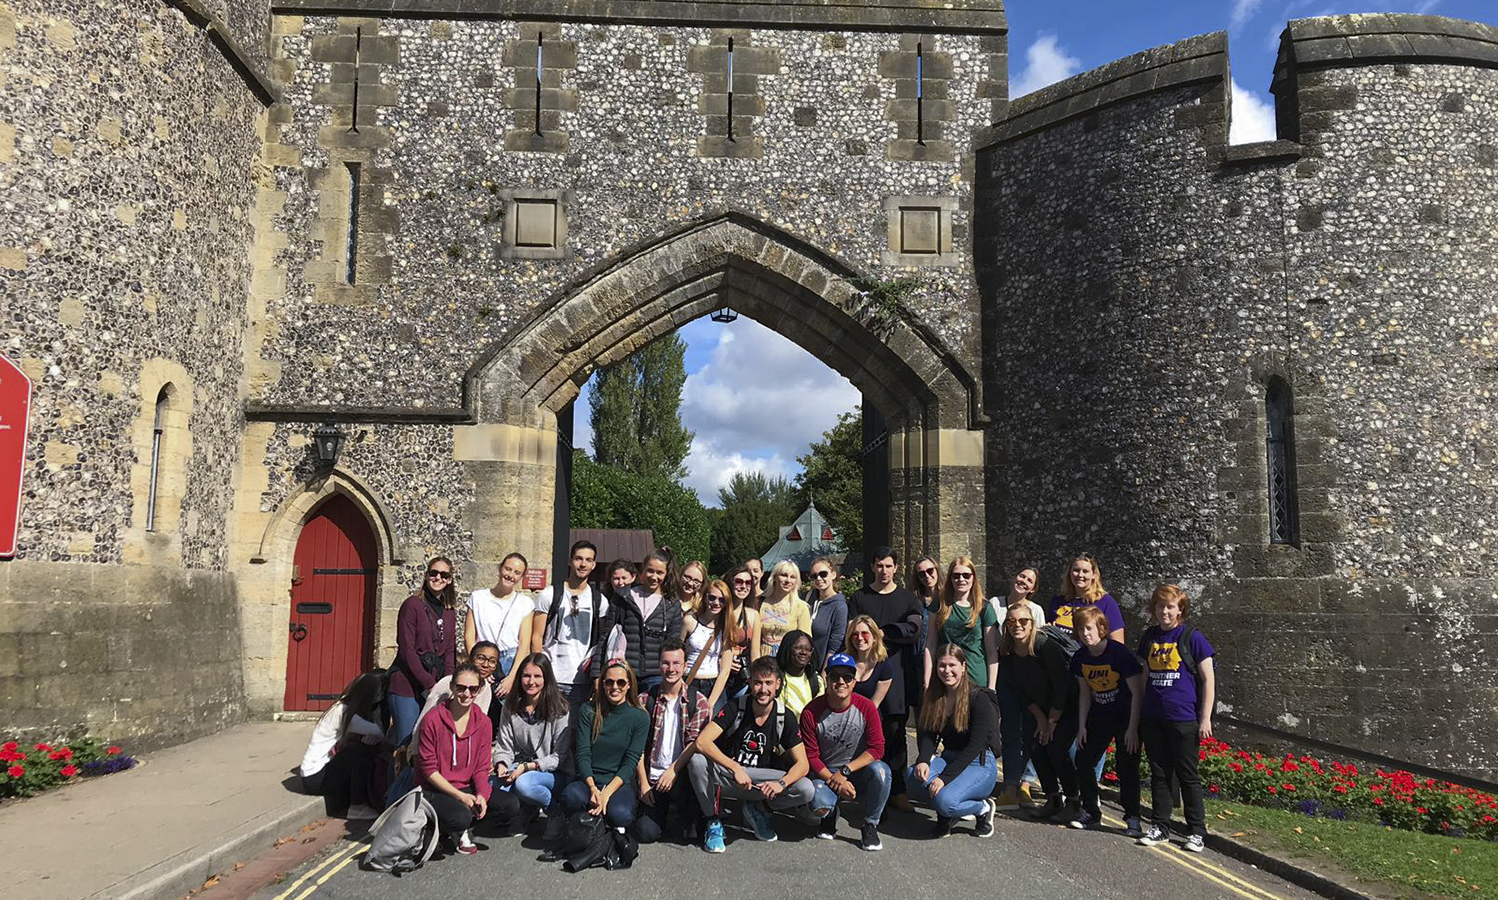 Students studying abroad at the University of Chichester in West Sussex, England, enjoy a day trip to Arundel Castle, a restored and remodeled medieval castle established in 1067.